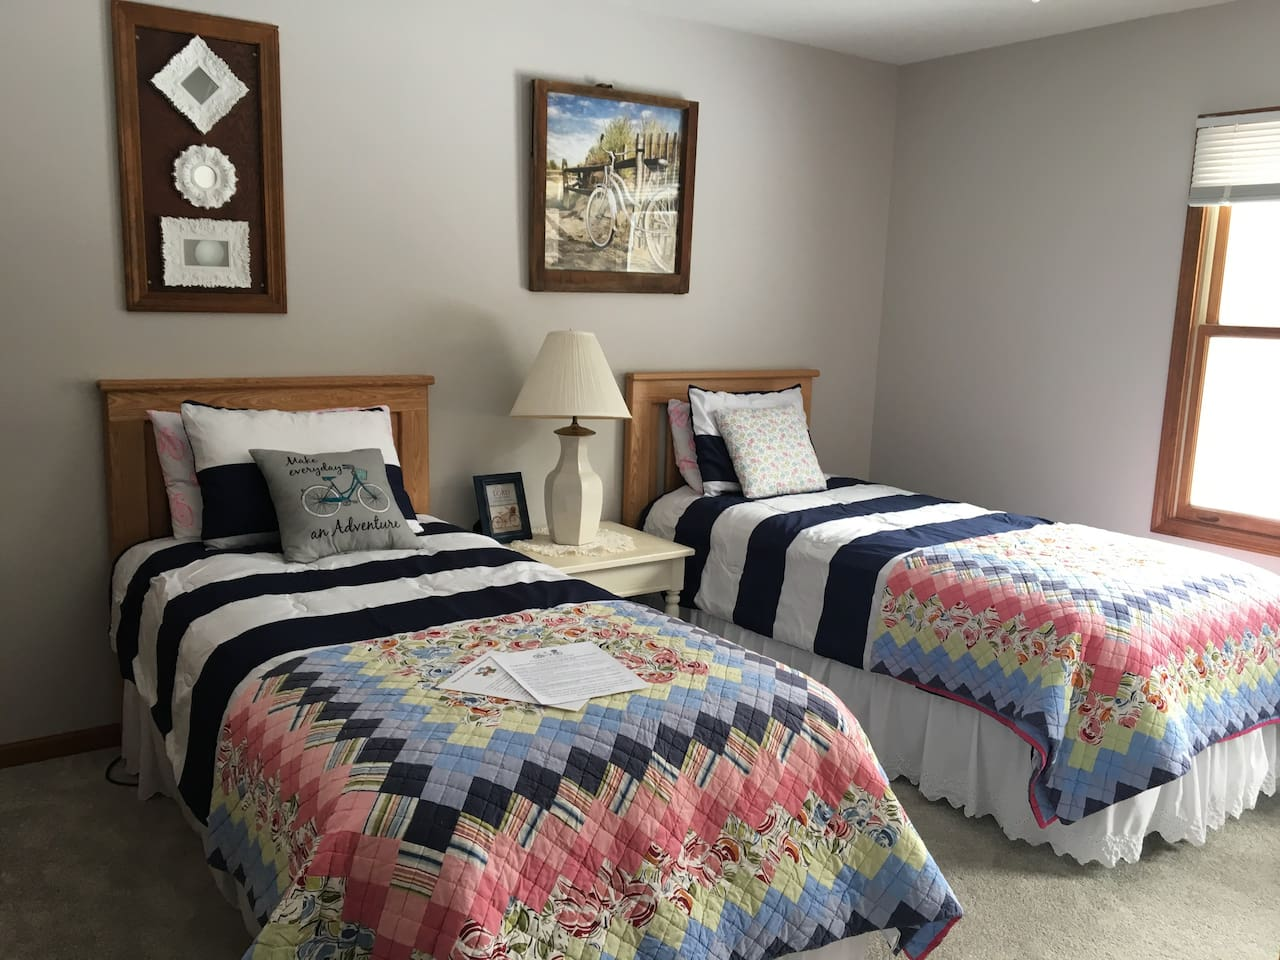 The Bike Room has two xl twin beds.  The bathroom is down the hall with a tub and shower.  It is shared with the Beach room and sometimes rented as a family suite. A full hot breakfast is included.